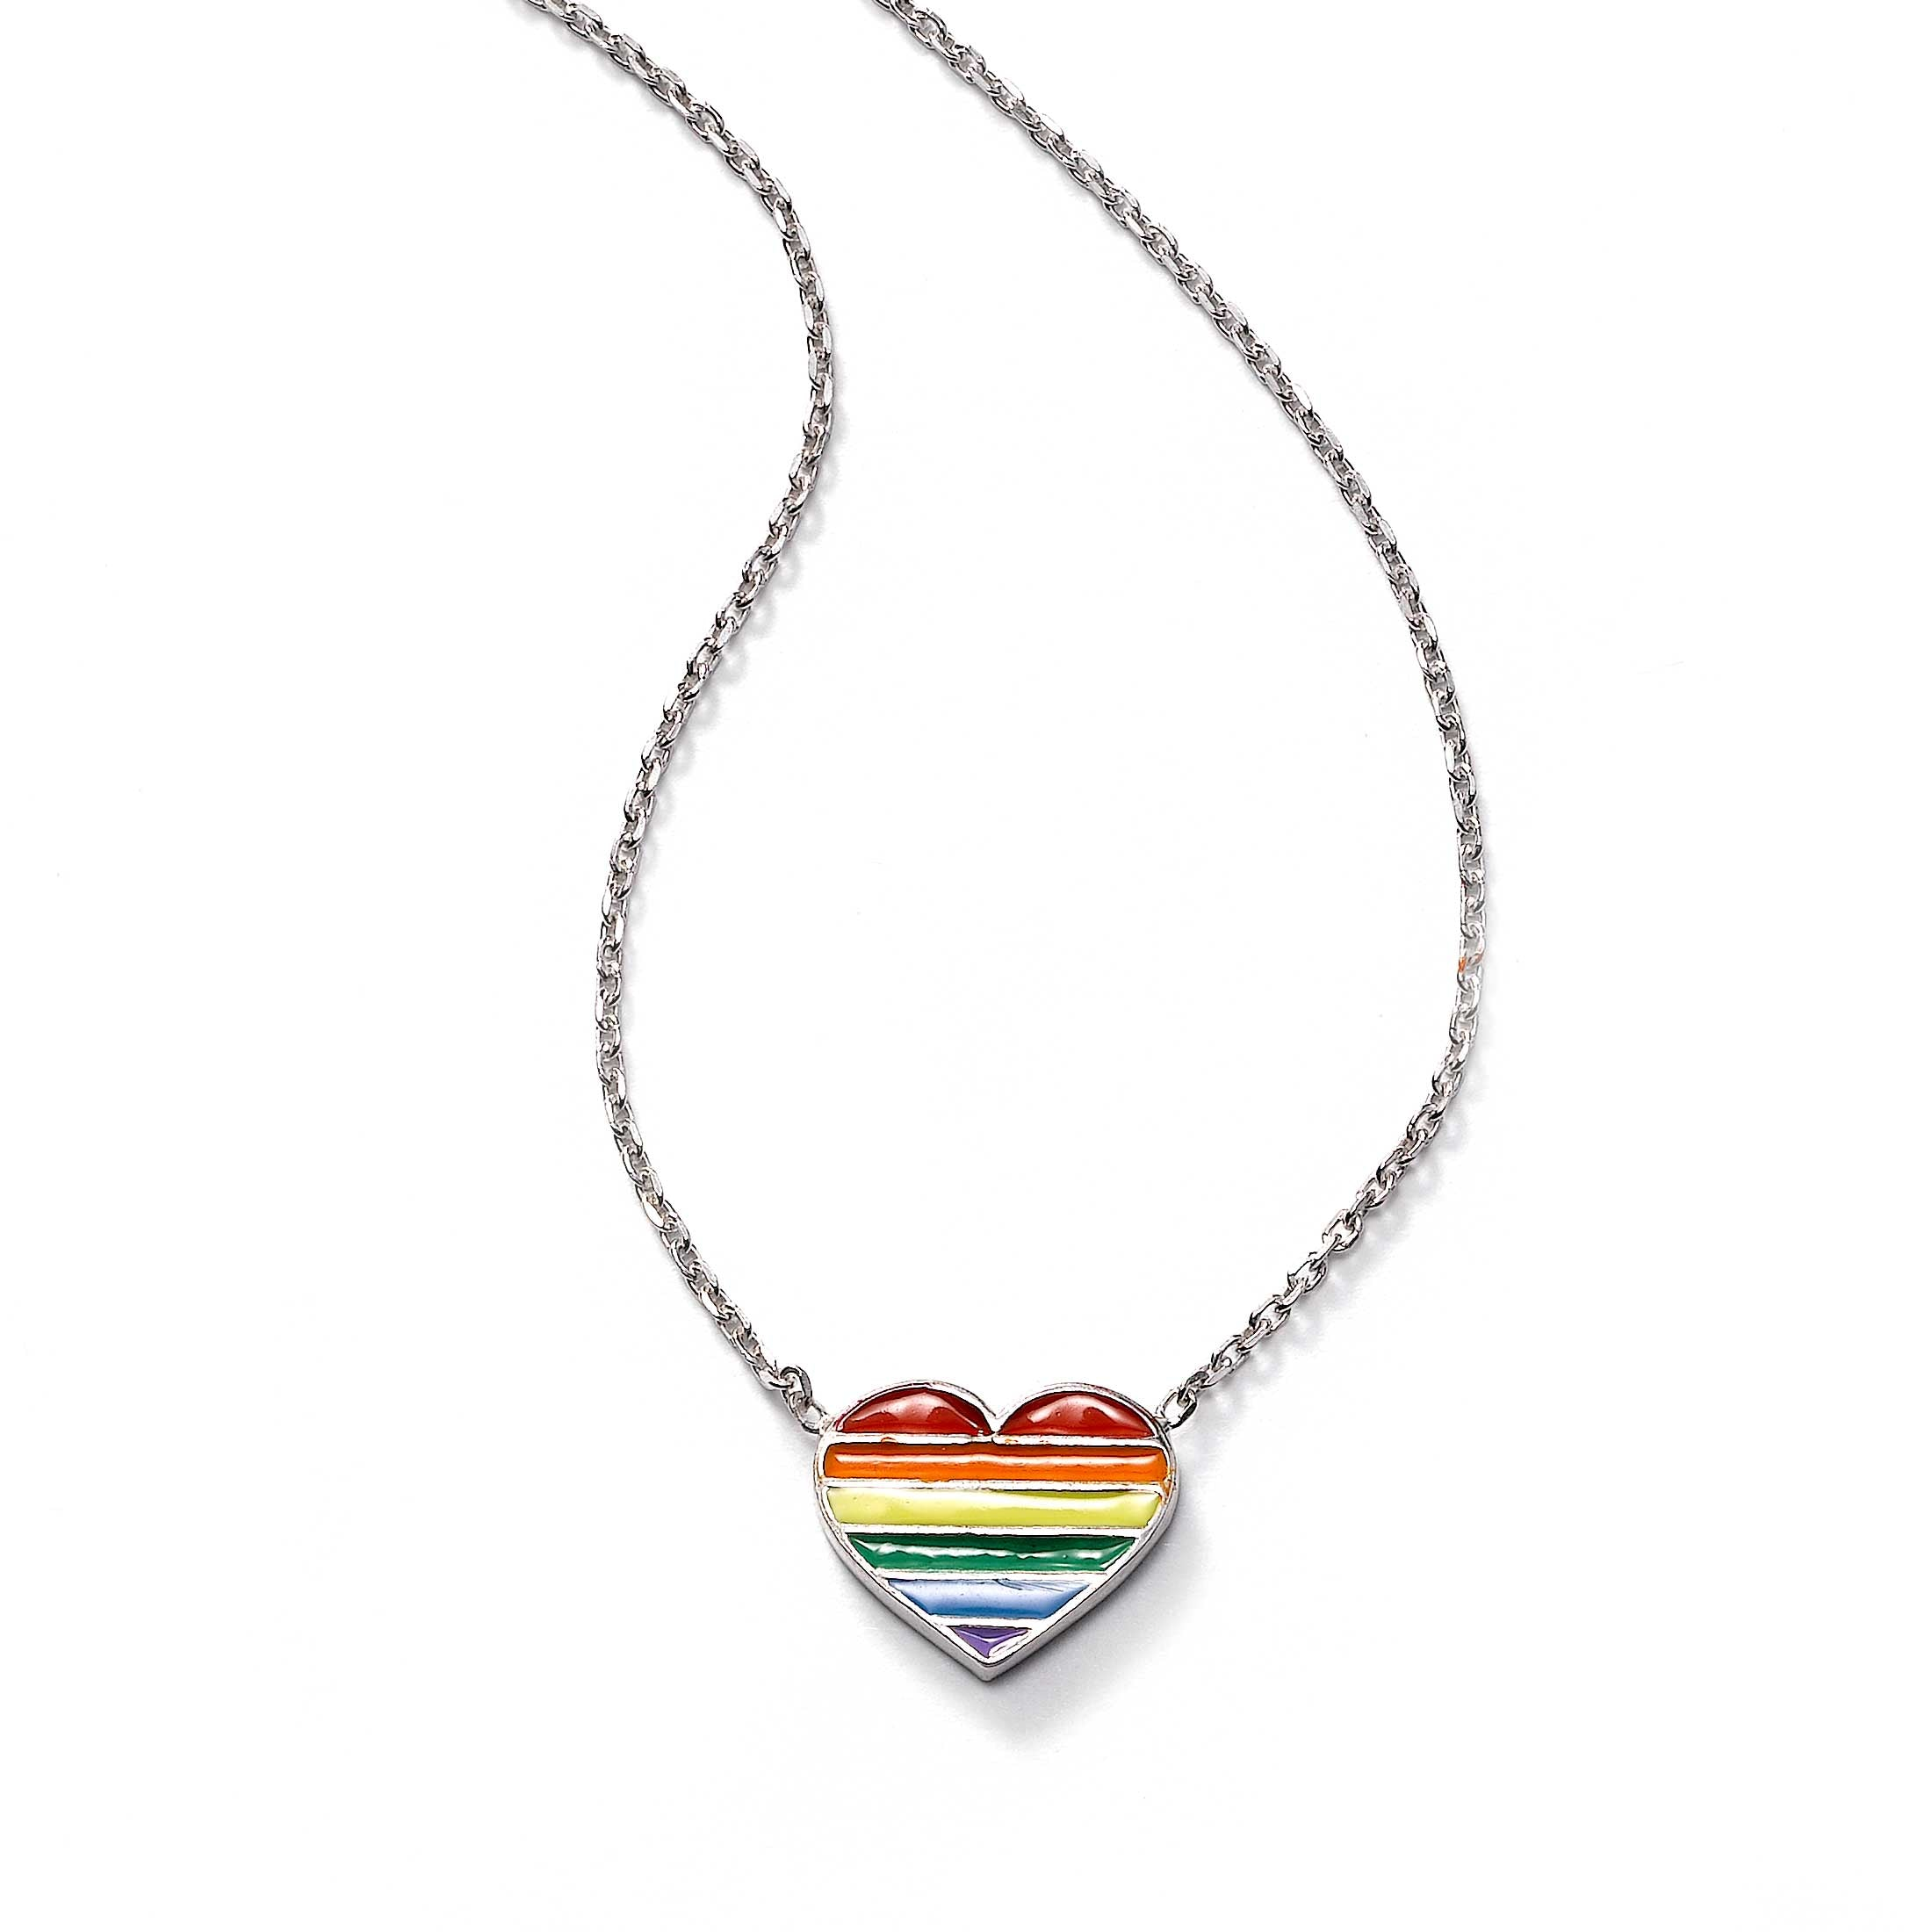 Rainbow Color Heart Necklace, Sterling Silver